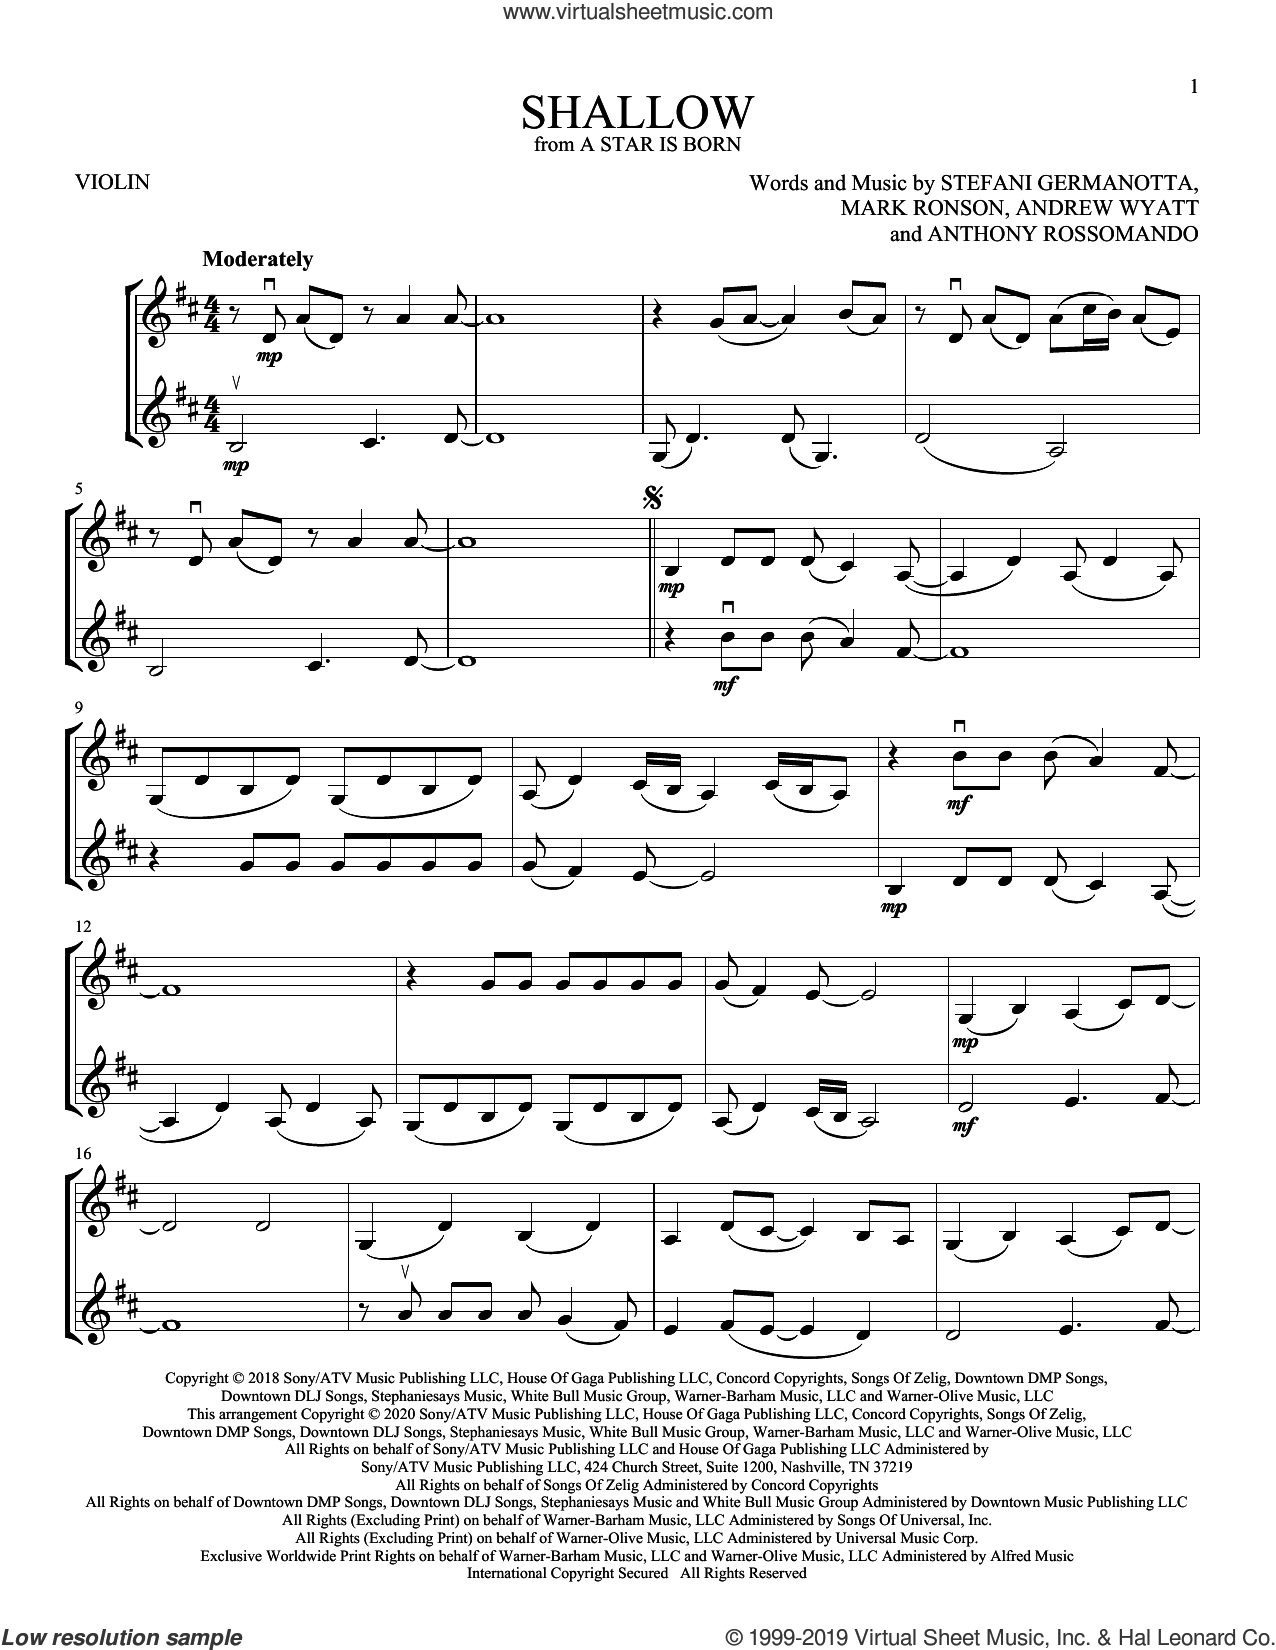 Shallow (from A Star Is Born) sheet music for two violins (duets, violin duets) by Lady Gaga, Andrew Wyatt, Anthony Rossomando and Mark Ronson, intermediate skill level